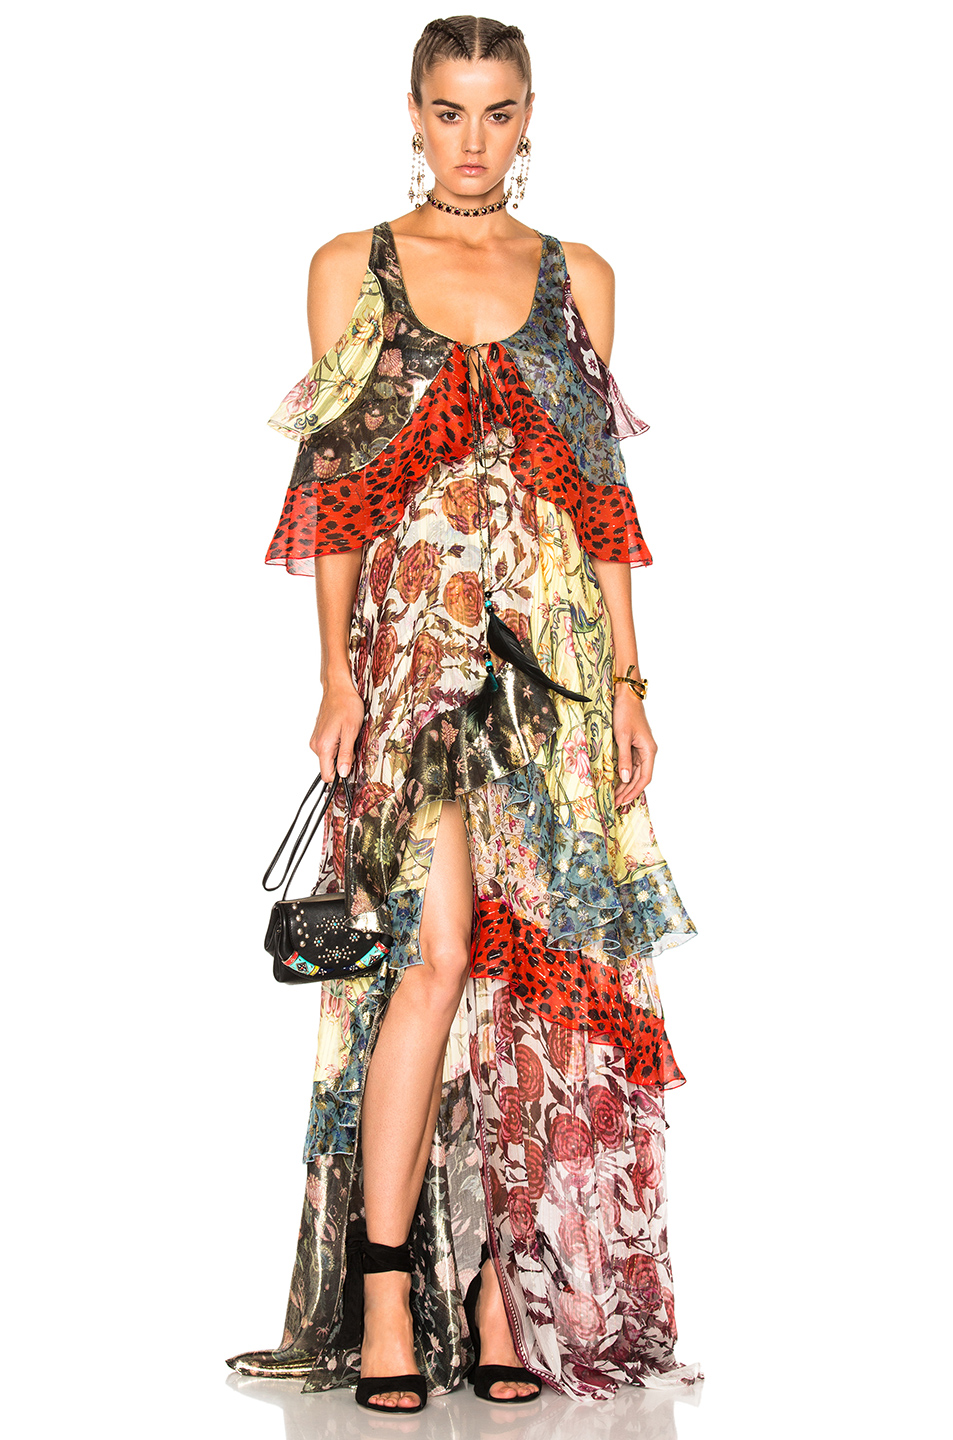 Roberto Cavalli Tiered Ruffle Dress in Animal Print,Black,Floral,Green,Metallics,Pink,Red